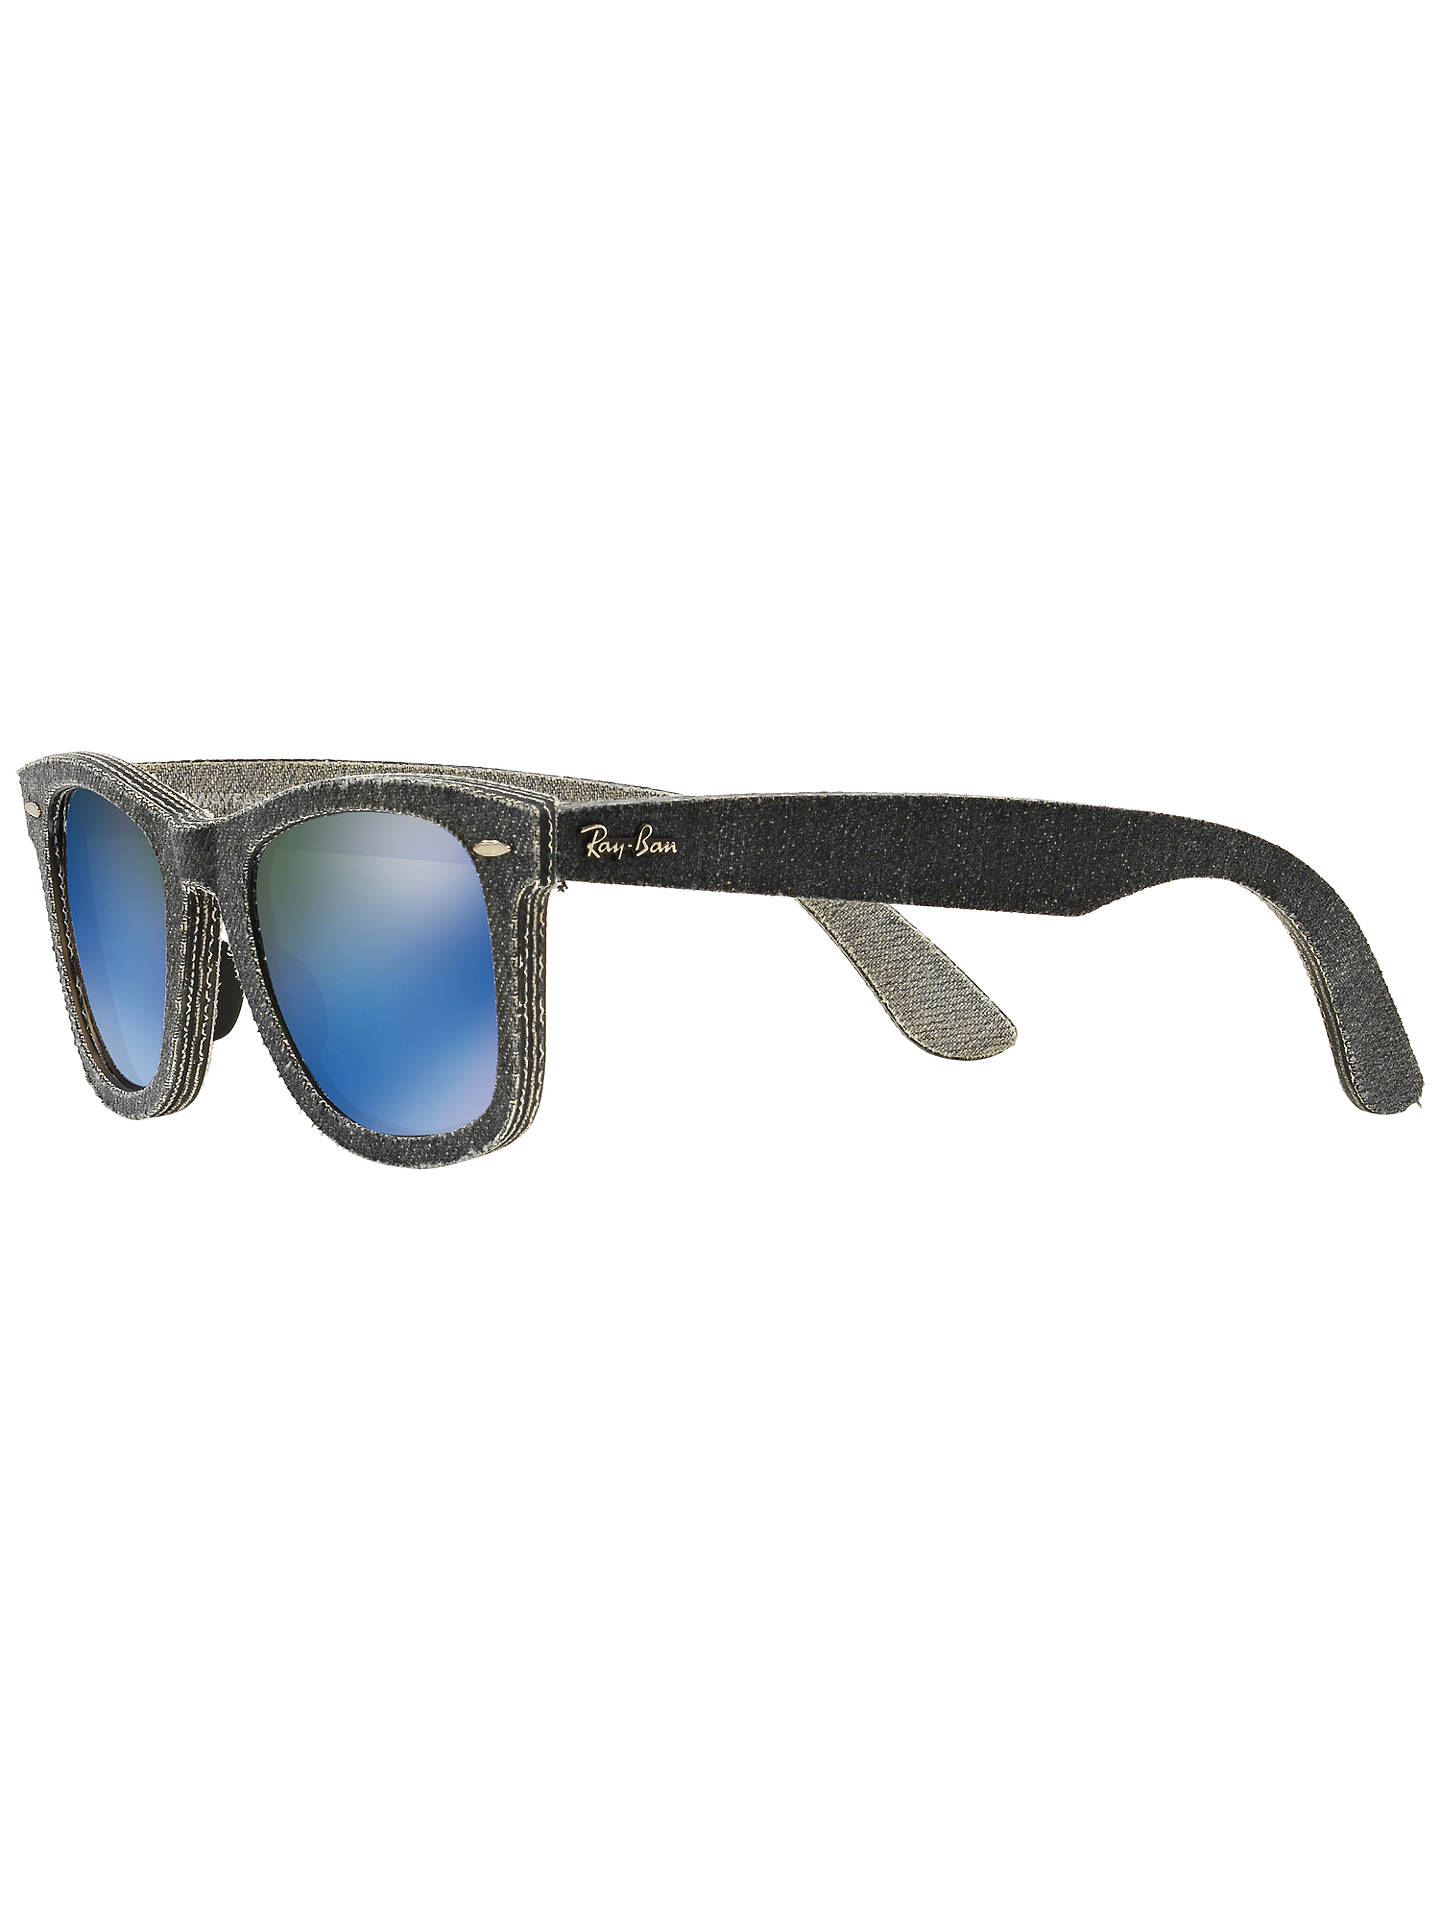 b3770e9ea9 Ray-Ban RB2140 Original Wayfarer Denim Sunglasses at John Lewis ...